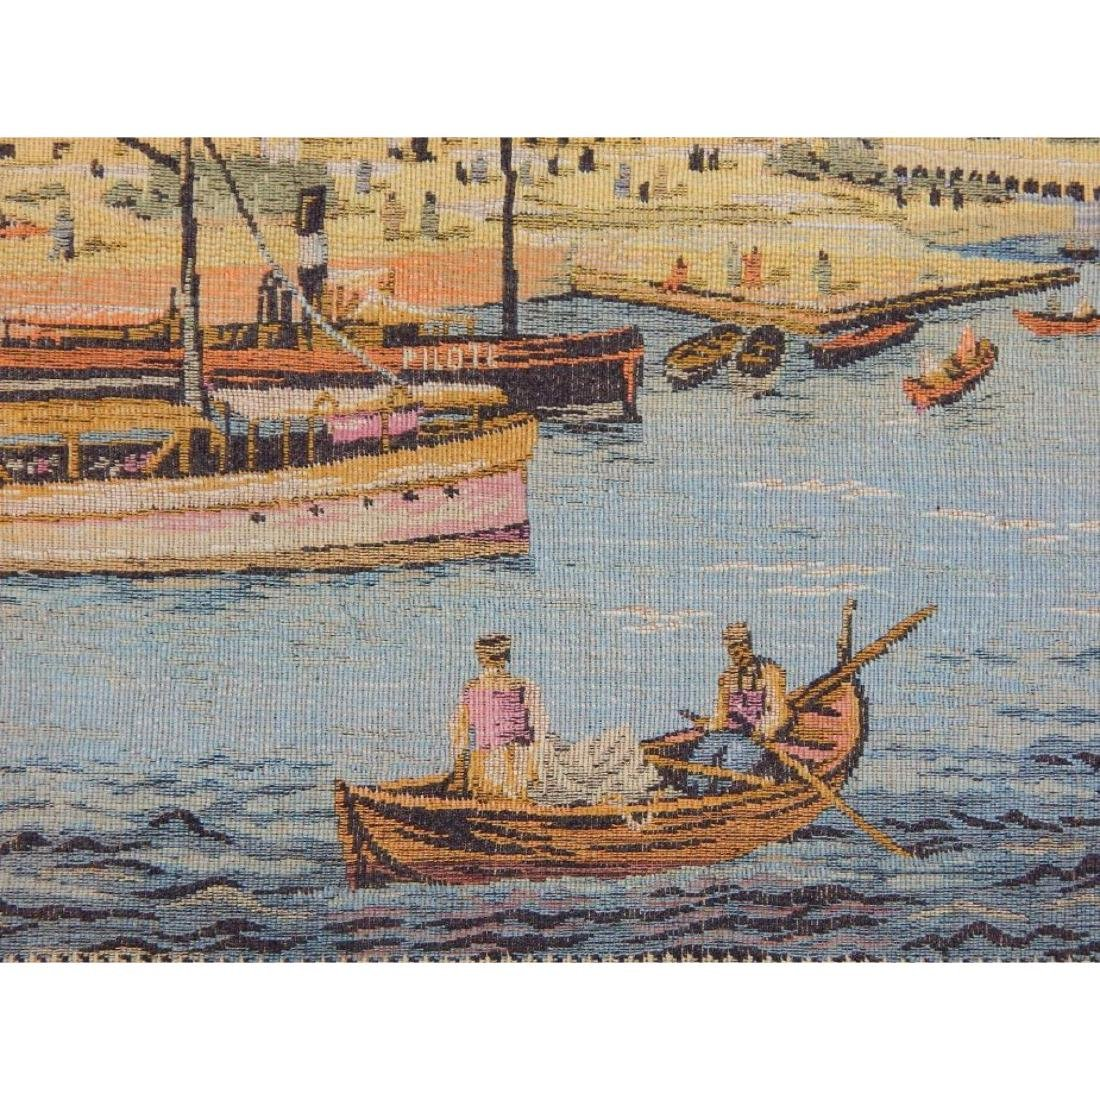 Vintage French Beautiful Tapestry Wall Hanging 58x83cm